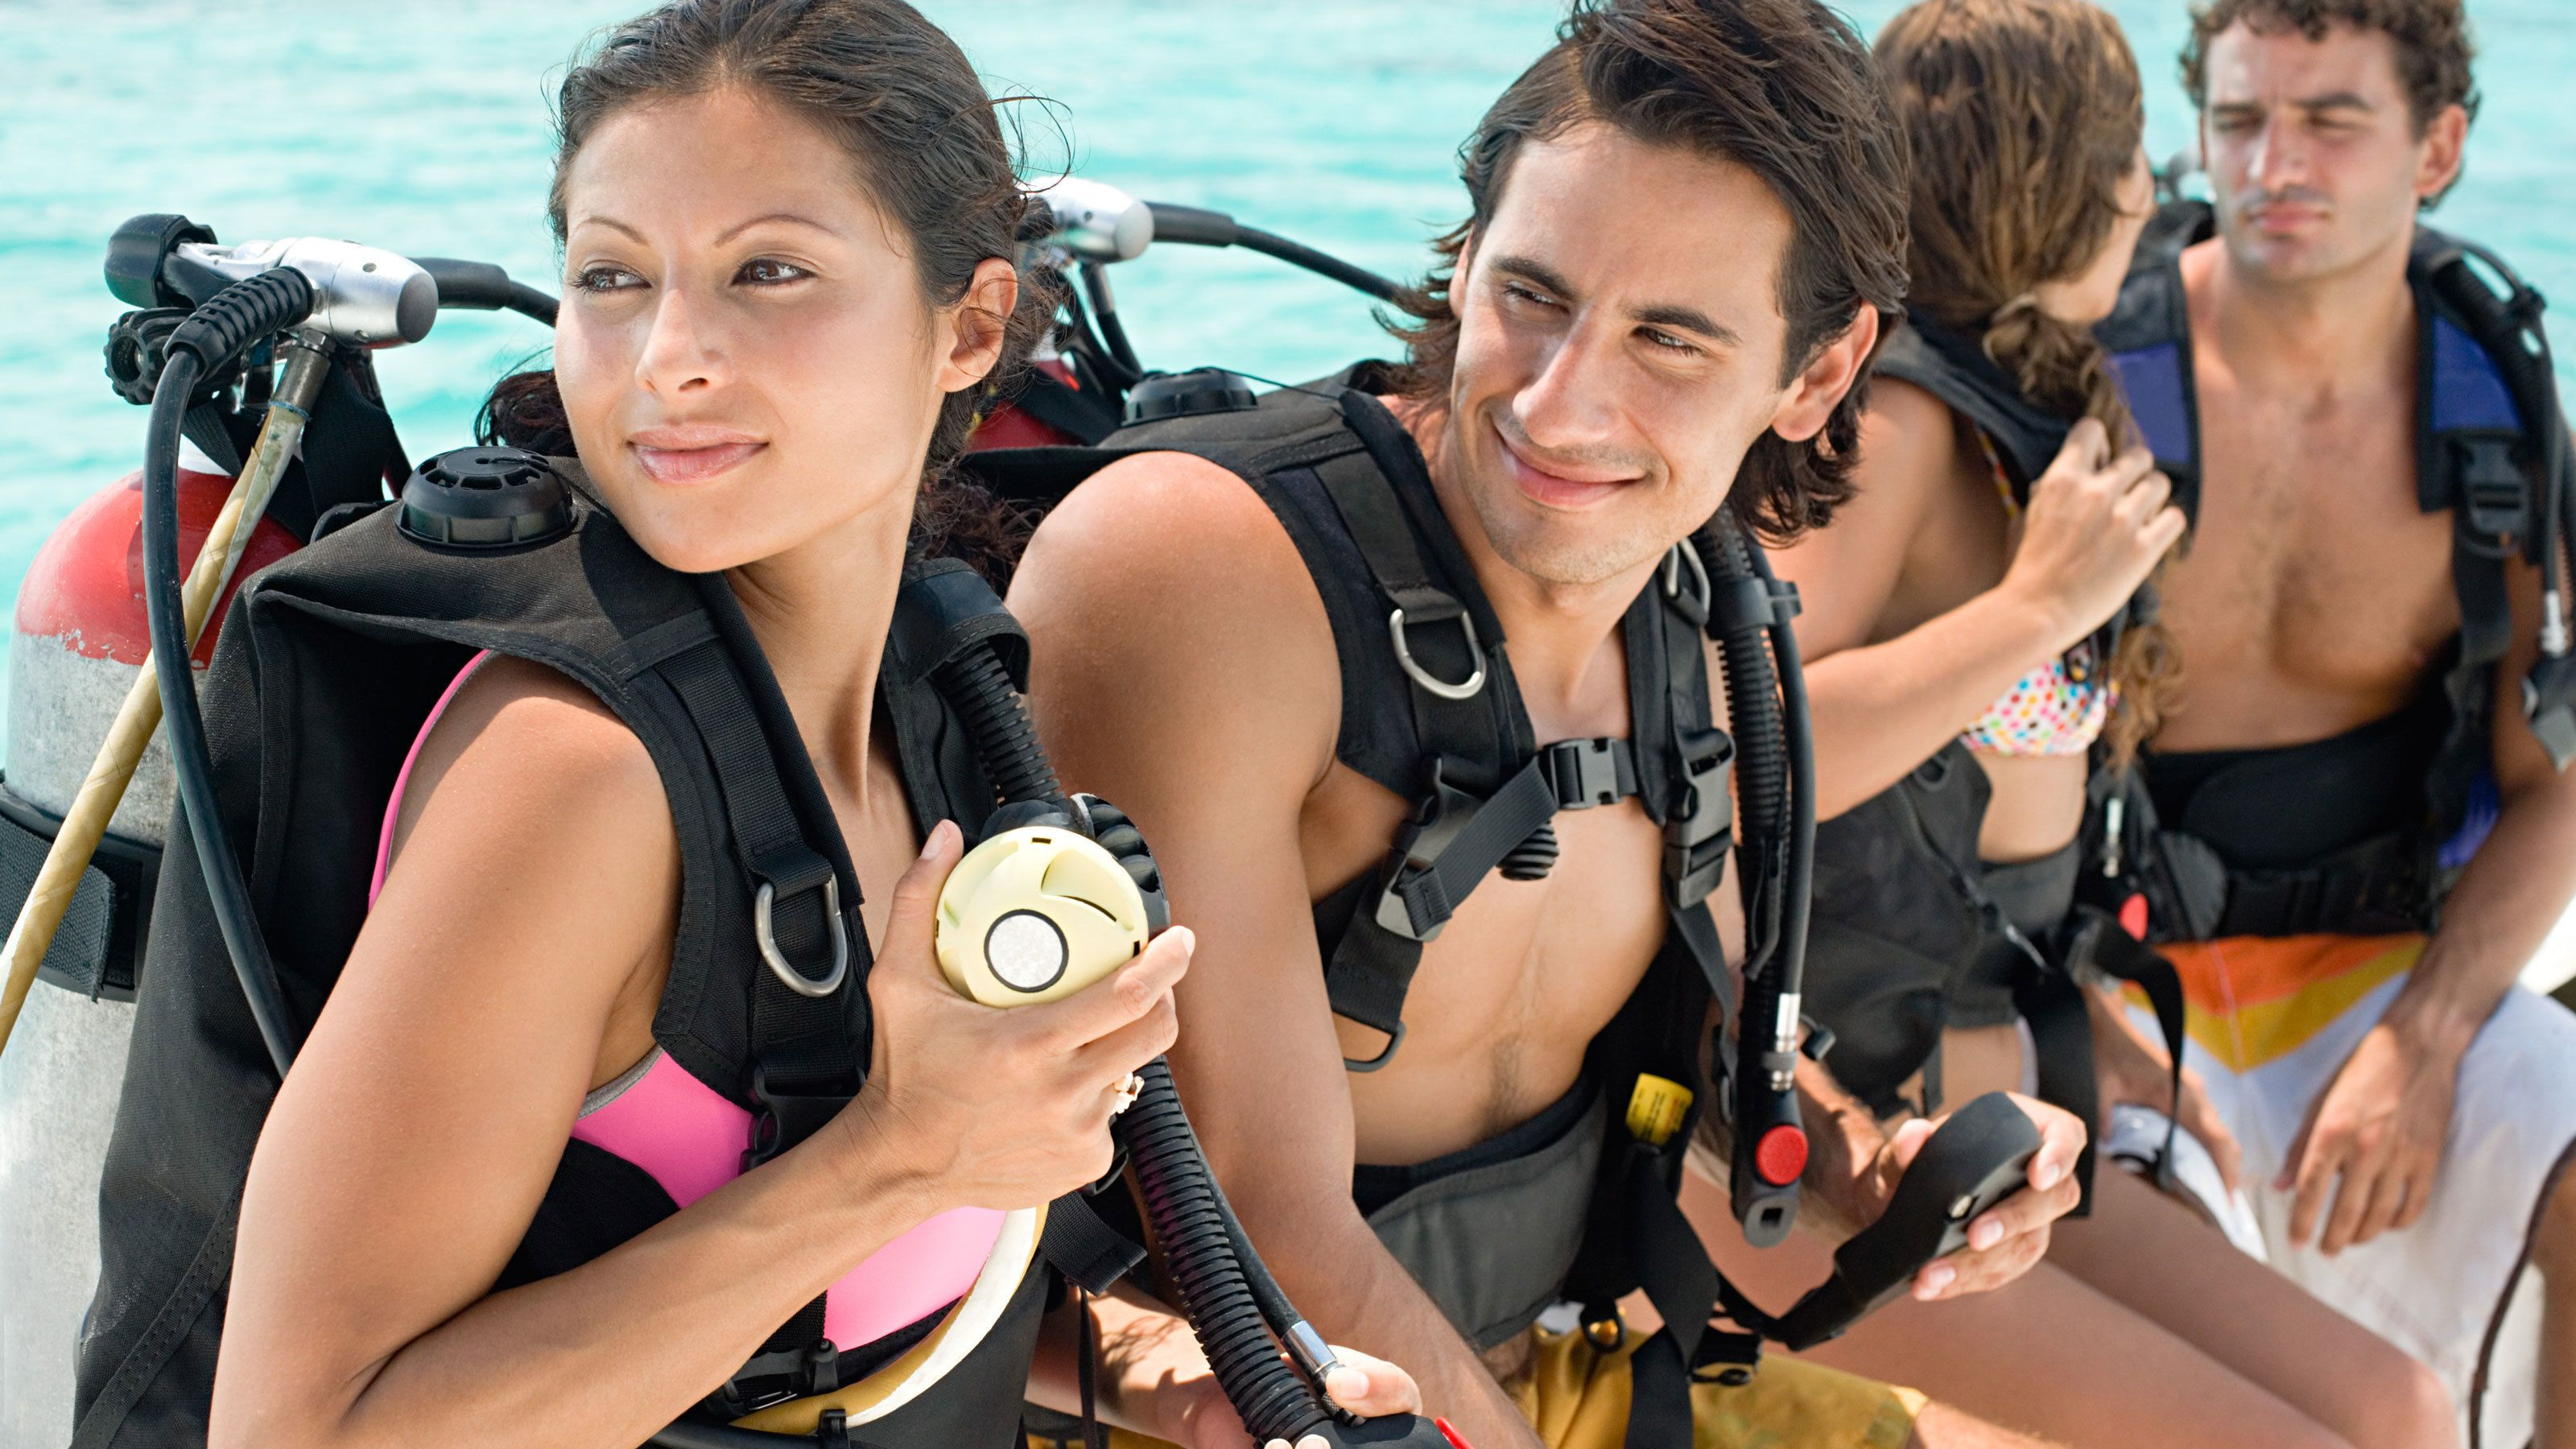 Scuba divers gearing up in Grand Cayman